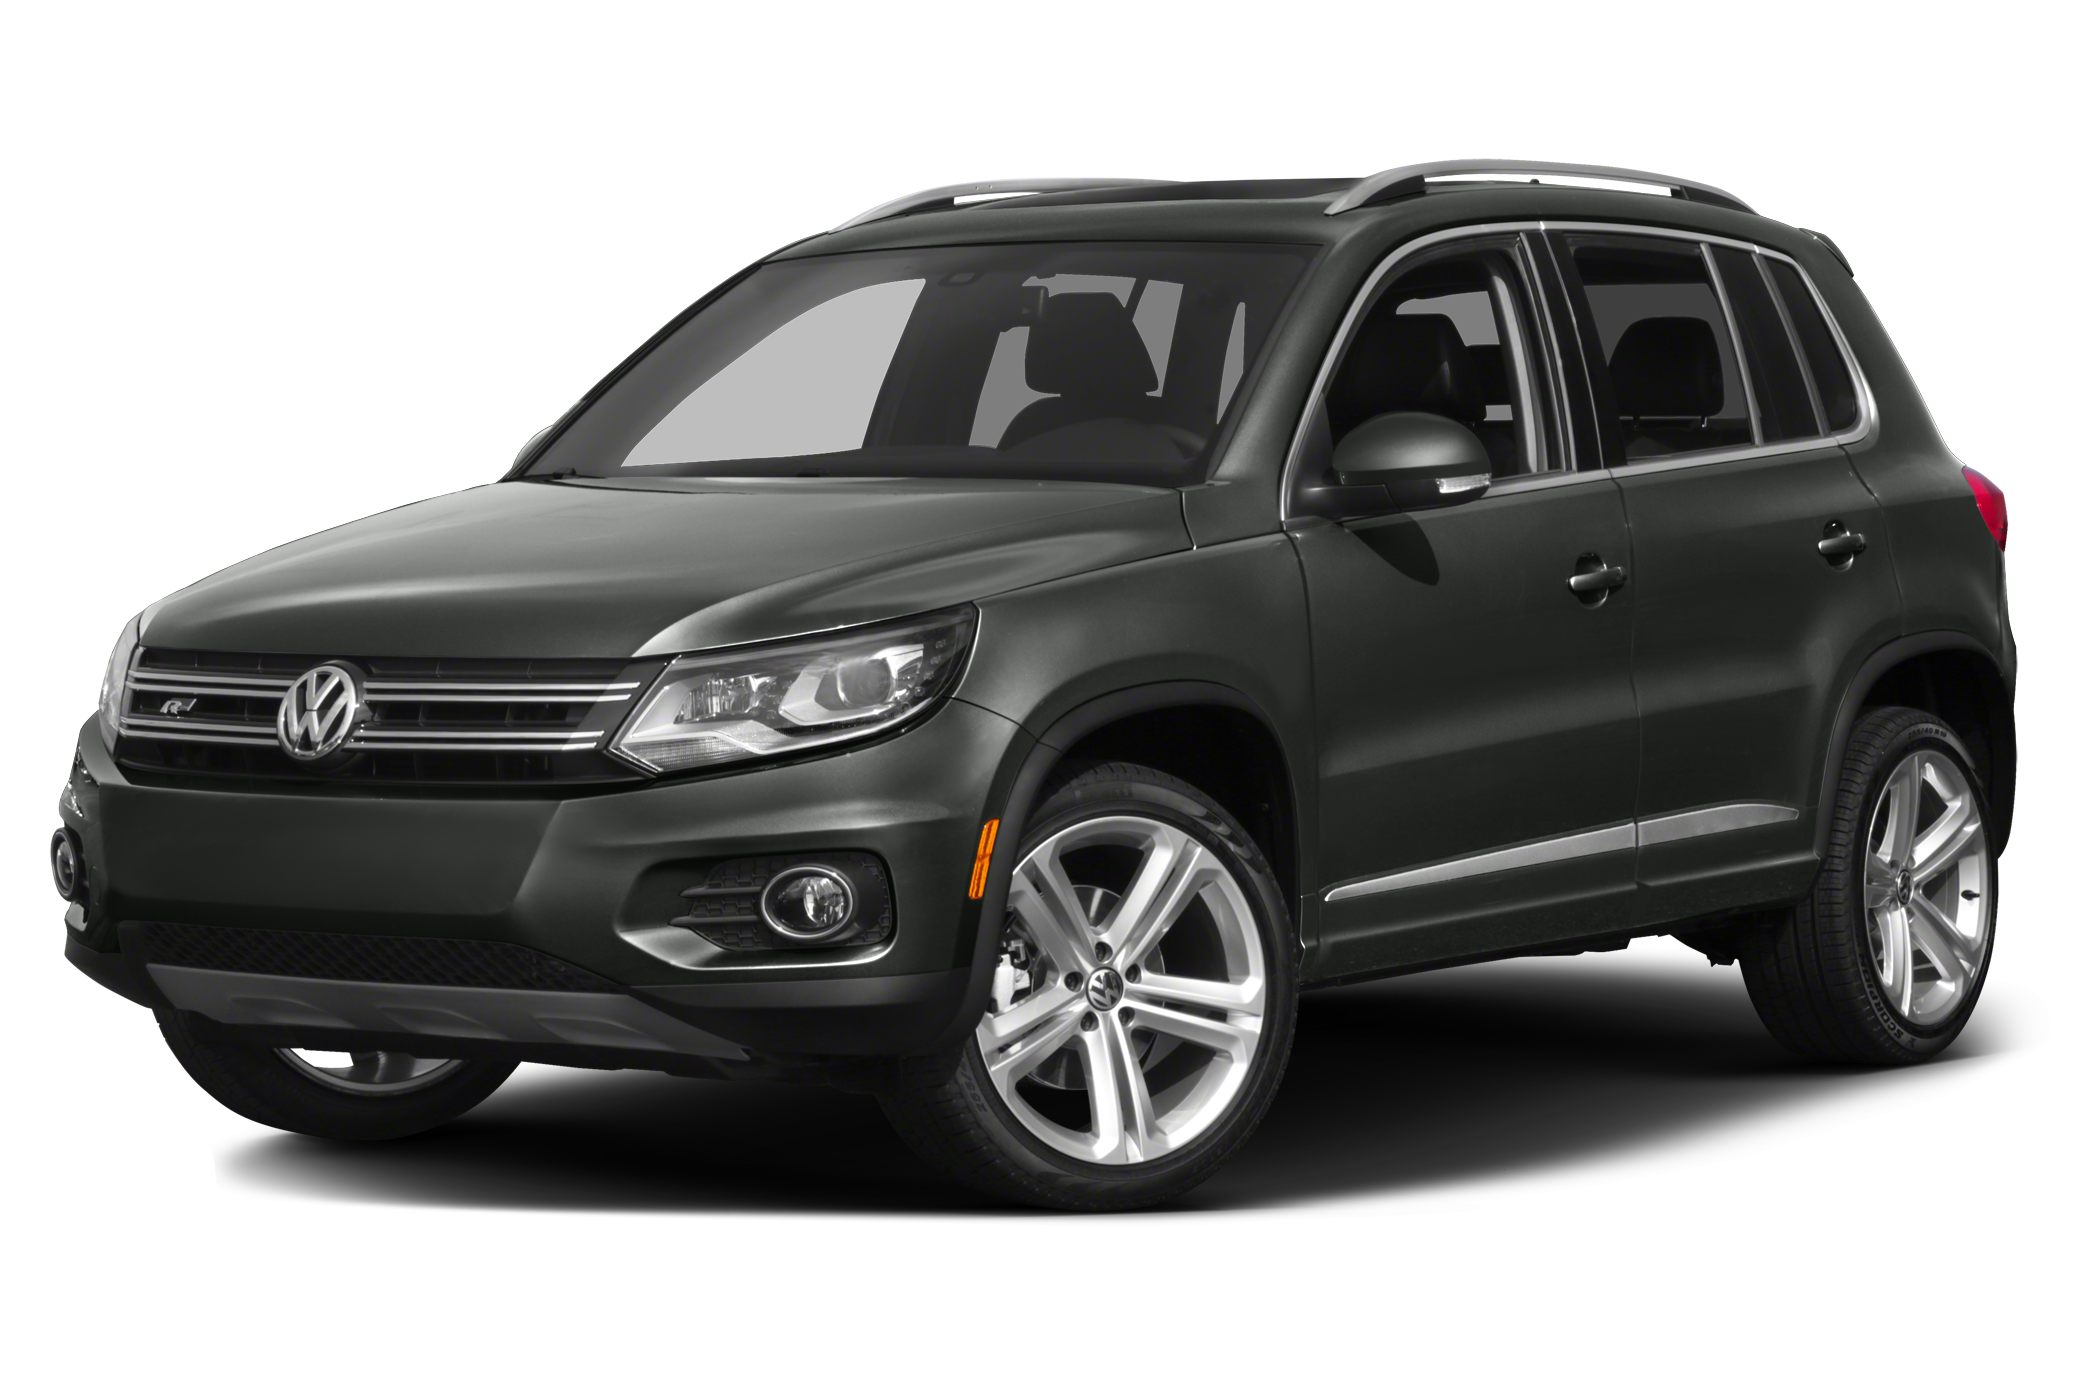 2015 Volkswagen Tiguan R-Line SUV for sale in Evanston for $40,370 with 50 miles.